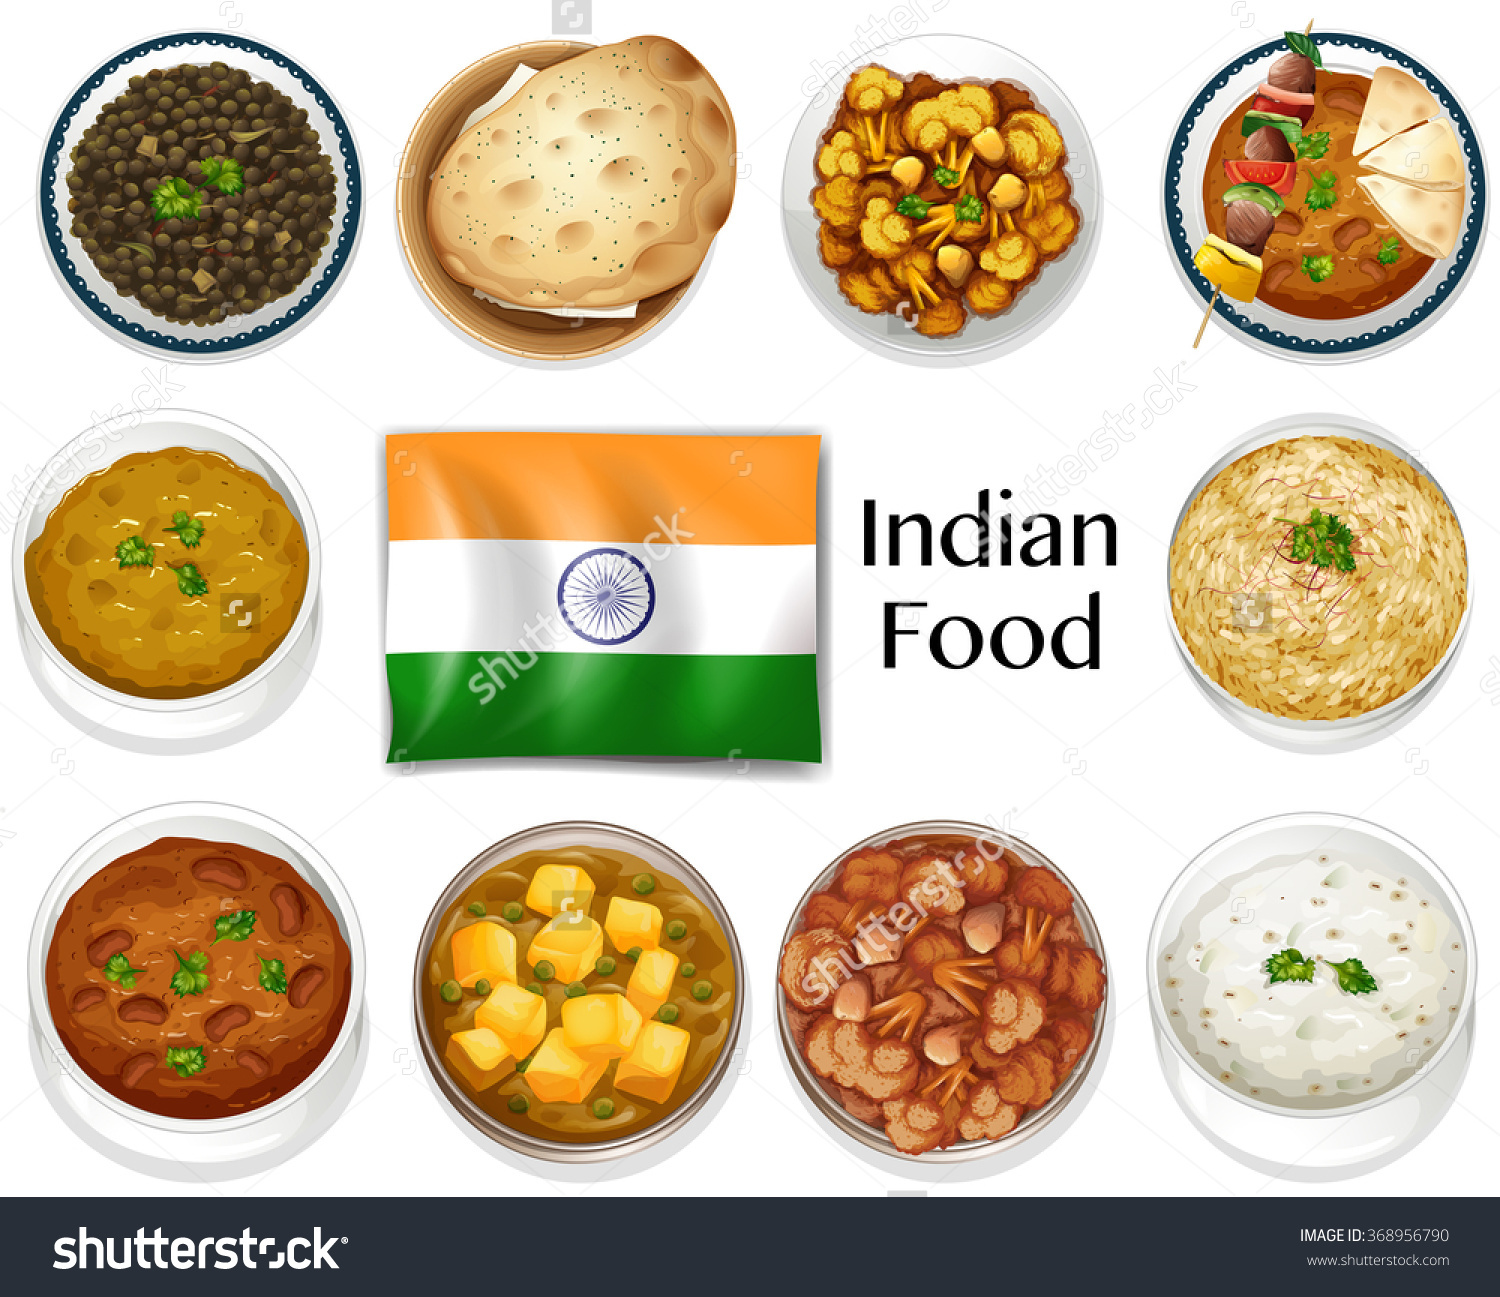 Different Dish Indian Food Illustration Stock Vector 368956790.